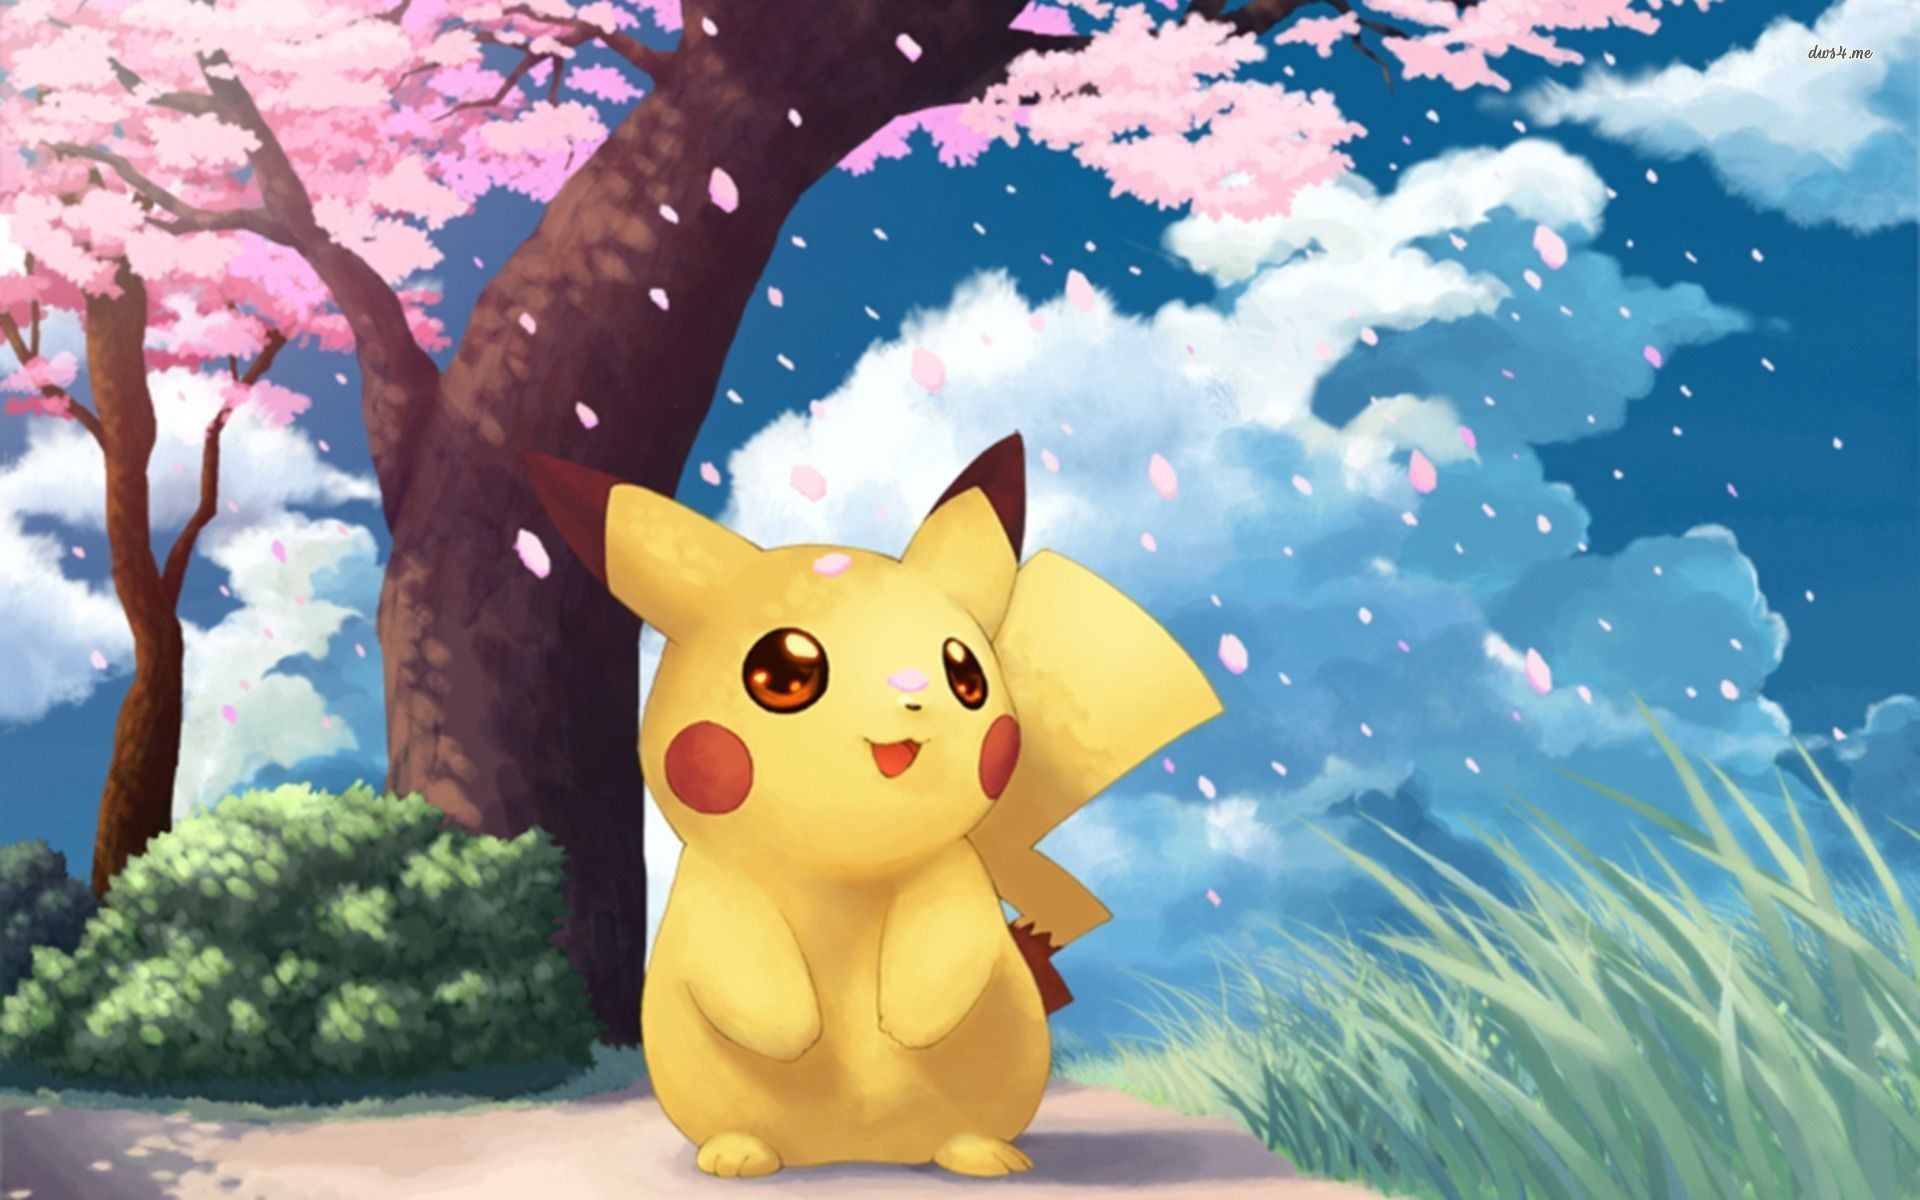 cute pokemon wallpaper ·① download free cool hd wallpapers for